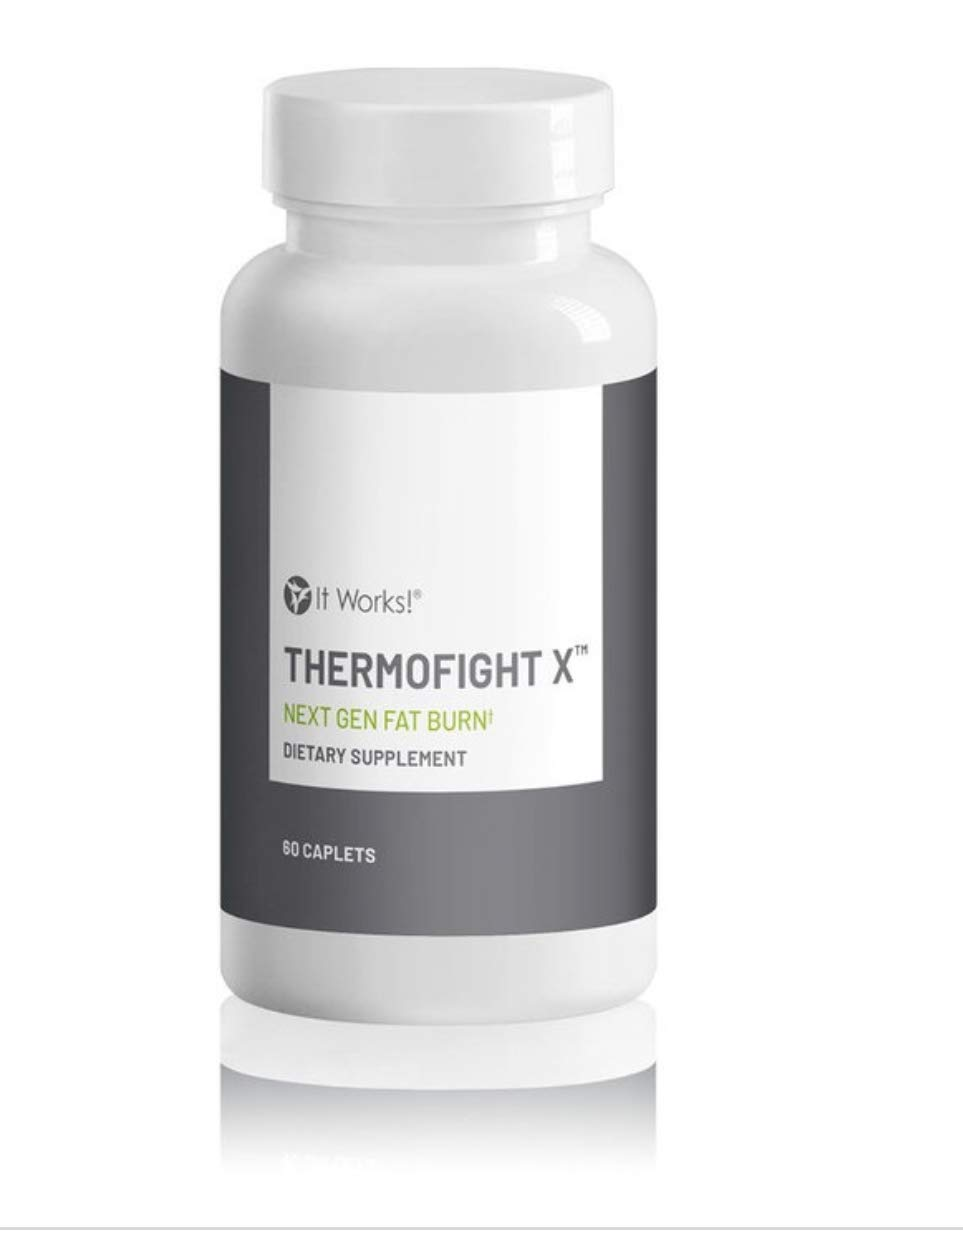 Thermofight X Next Gen Fat Burner - 60 Caplets by It Works